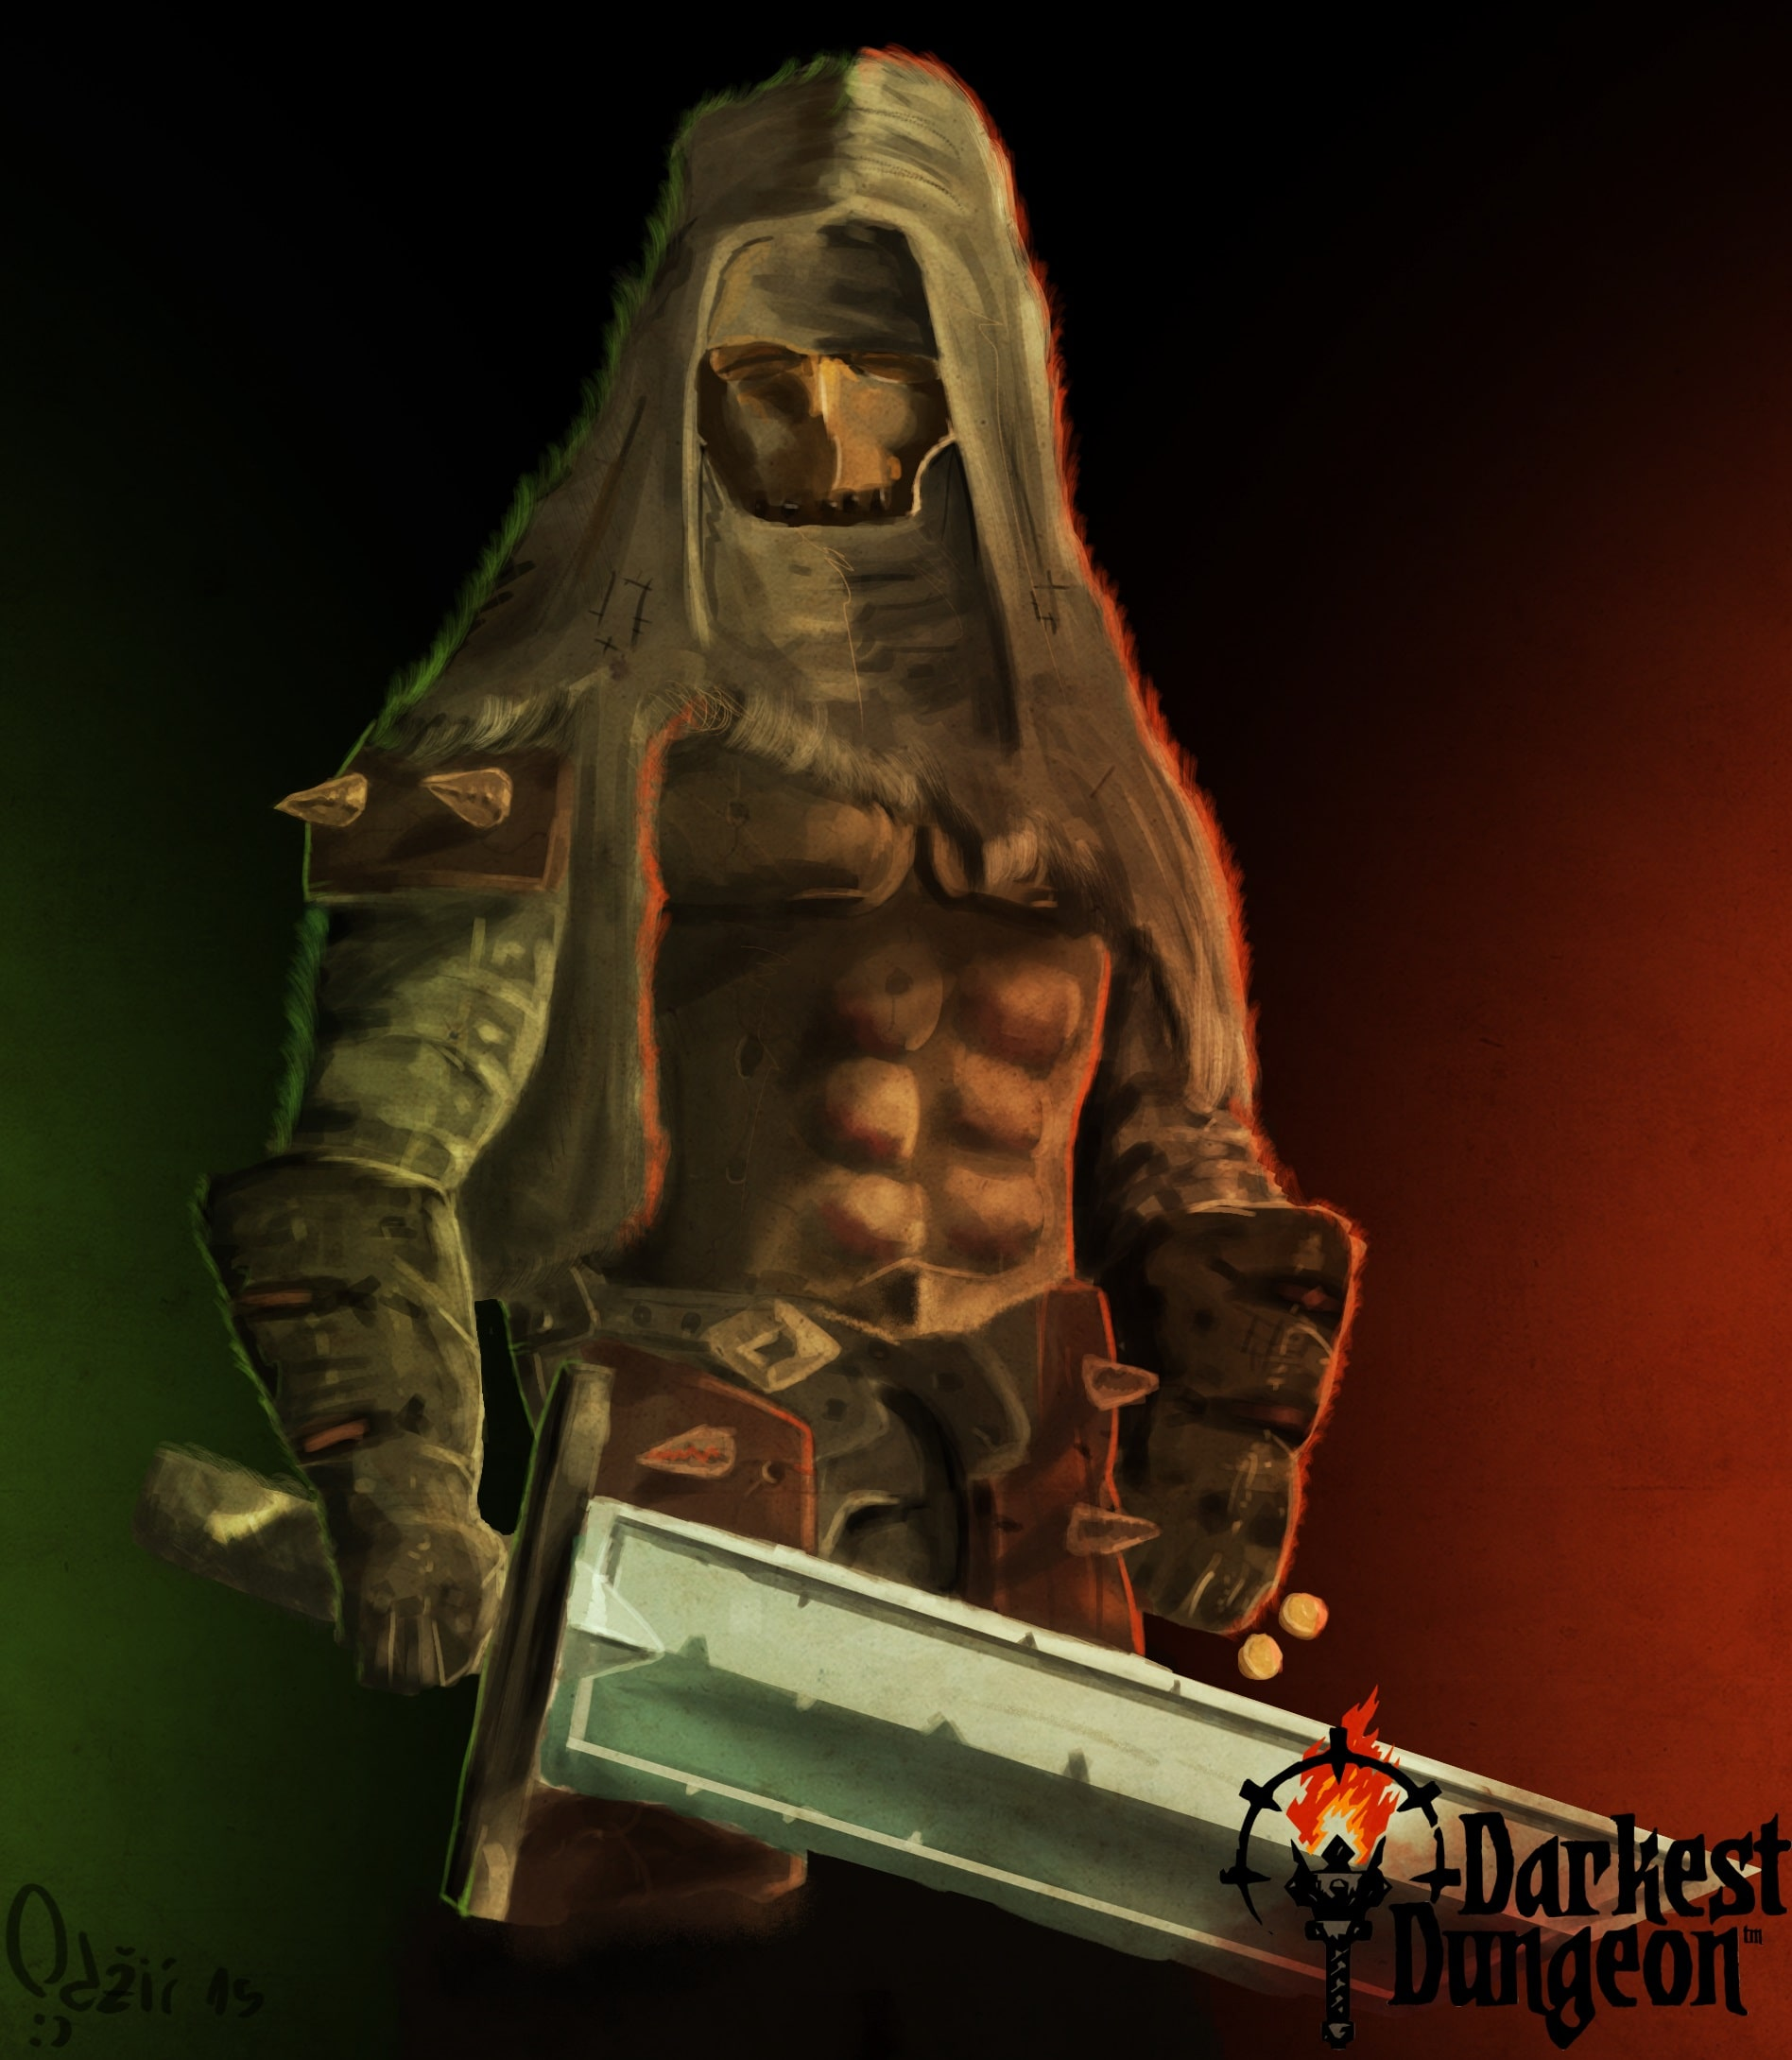 Darkest Dungeon: Leper Wallpapers hd